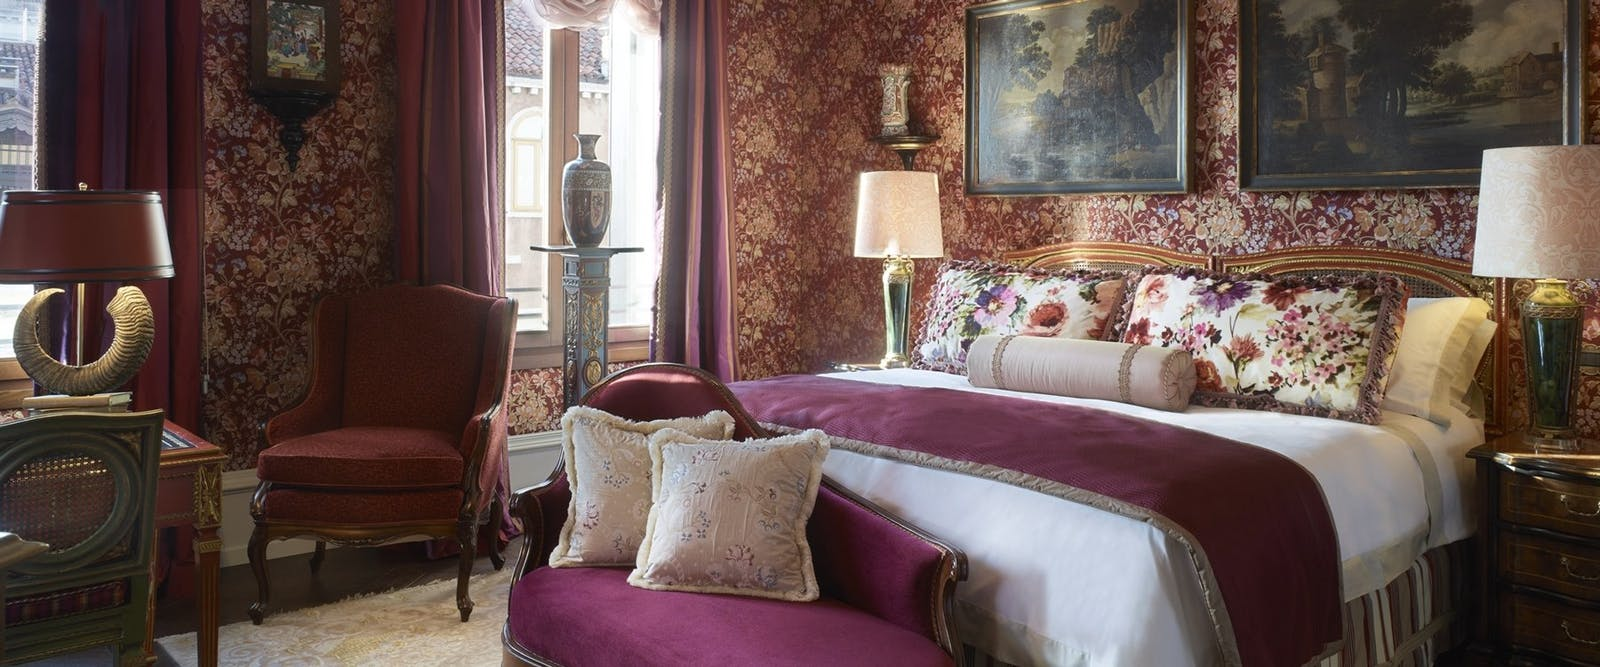 The Ruskin Patron Grand Canal Suite at Gritti Palace, Venice, Italy